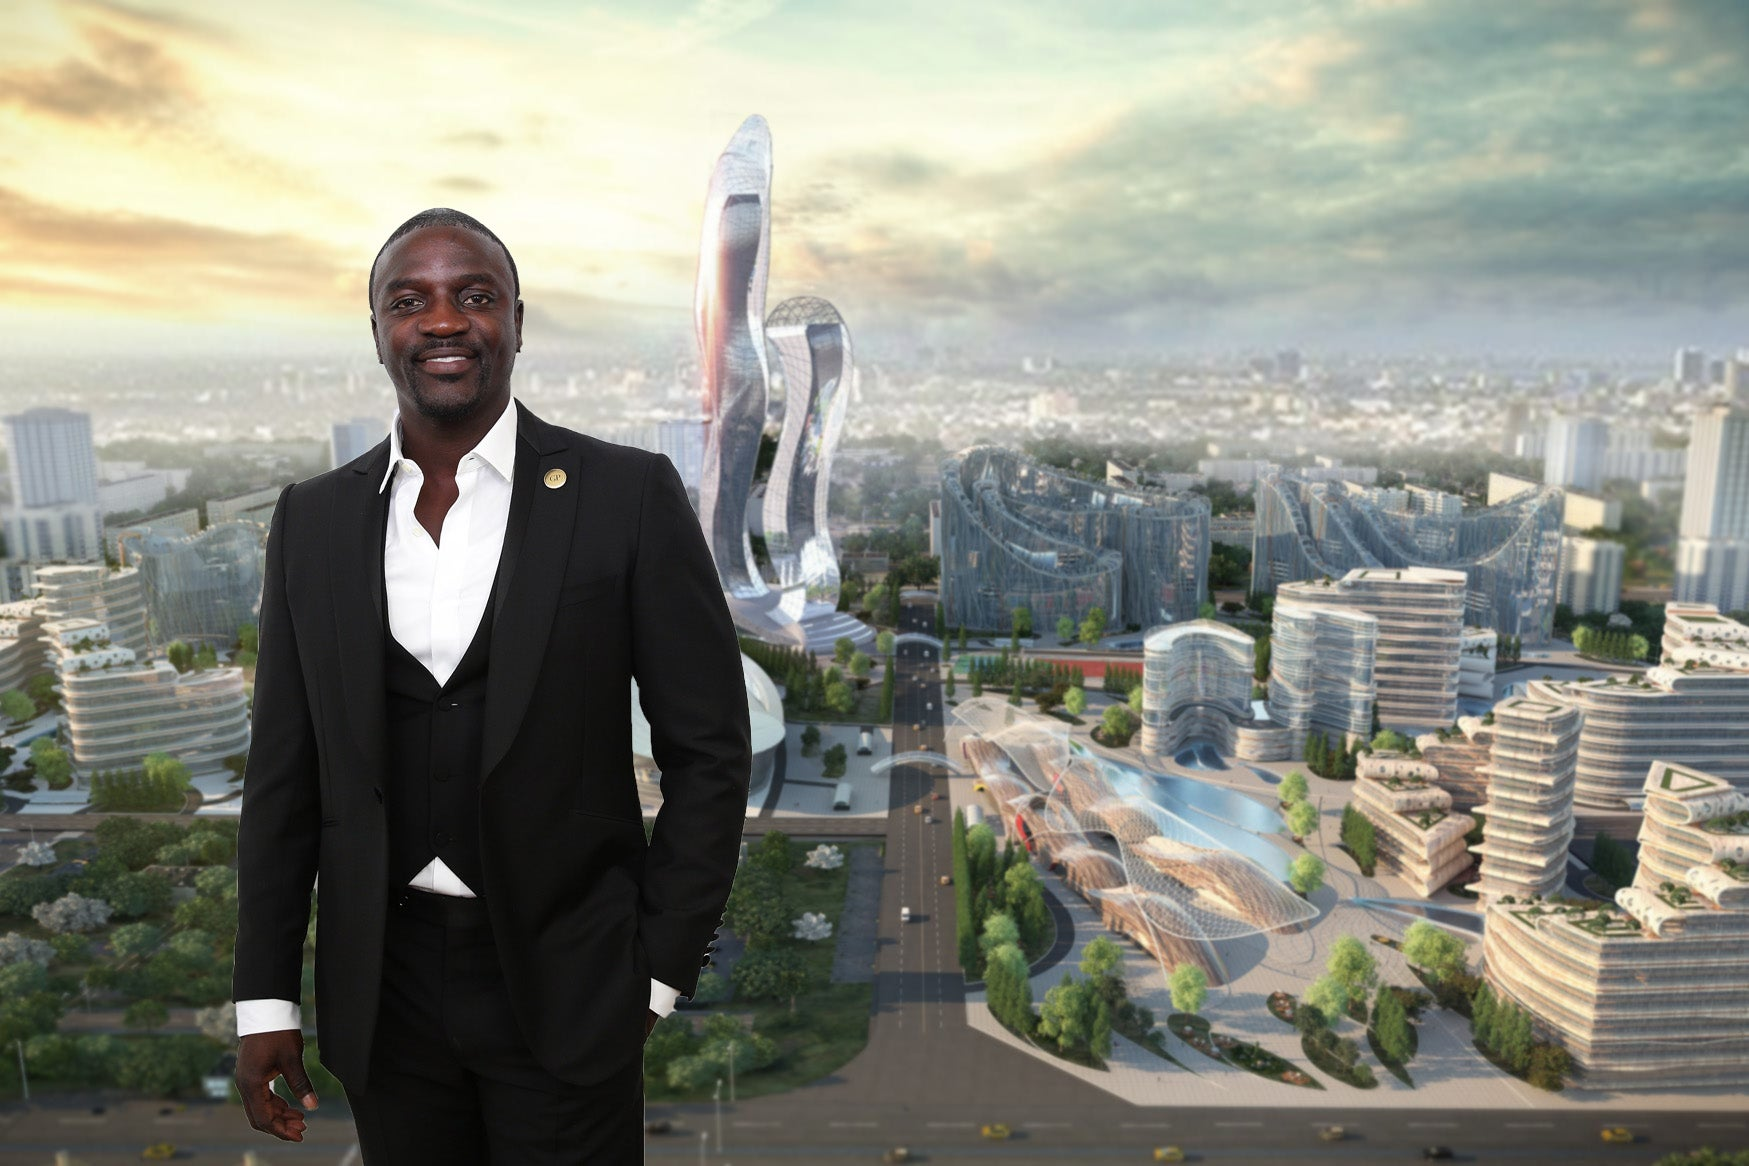 Senegalese-American singer Akon is raising  billion to build a real-life Wakanda straight out of the 'Black Panther' movie, but some Afric